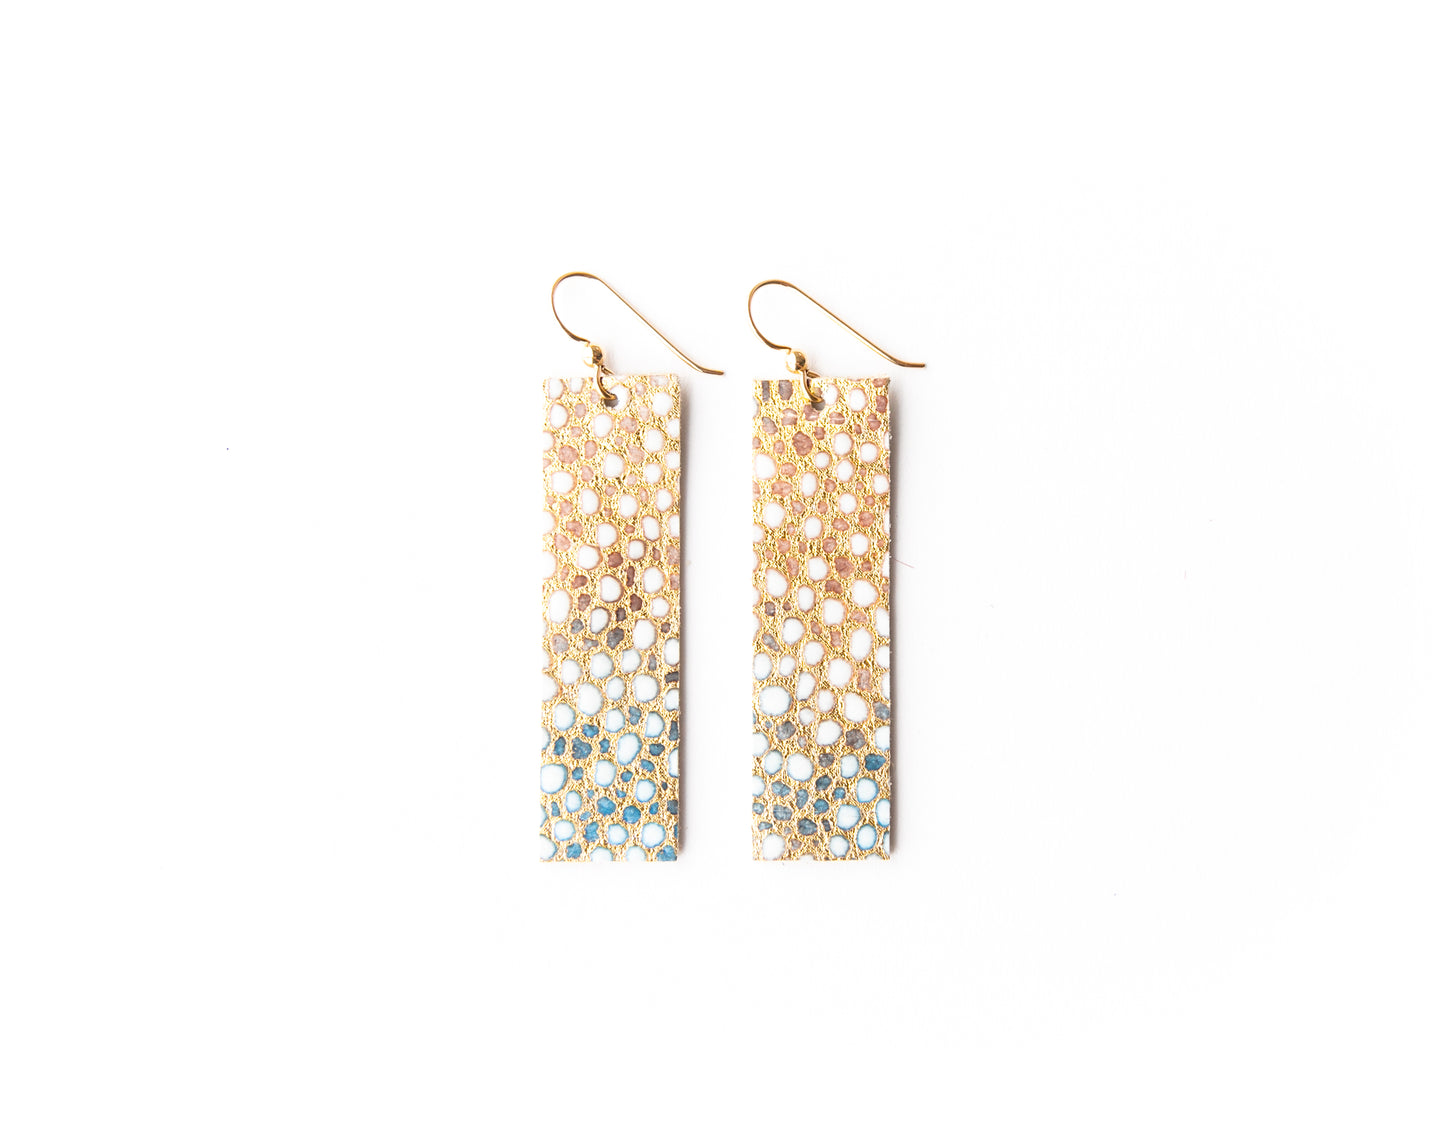 Gold and Blue Speckled Four Corners Leather Earrings